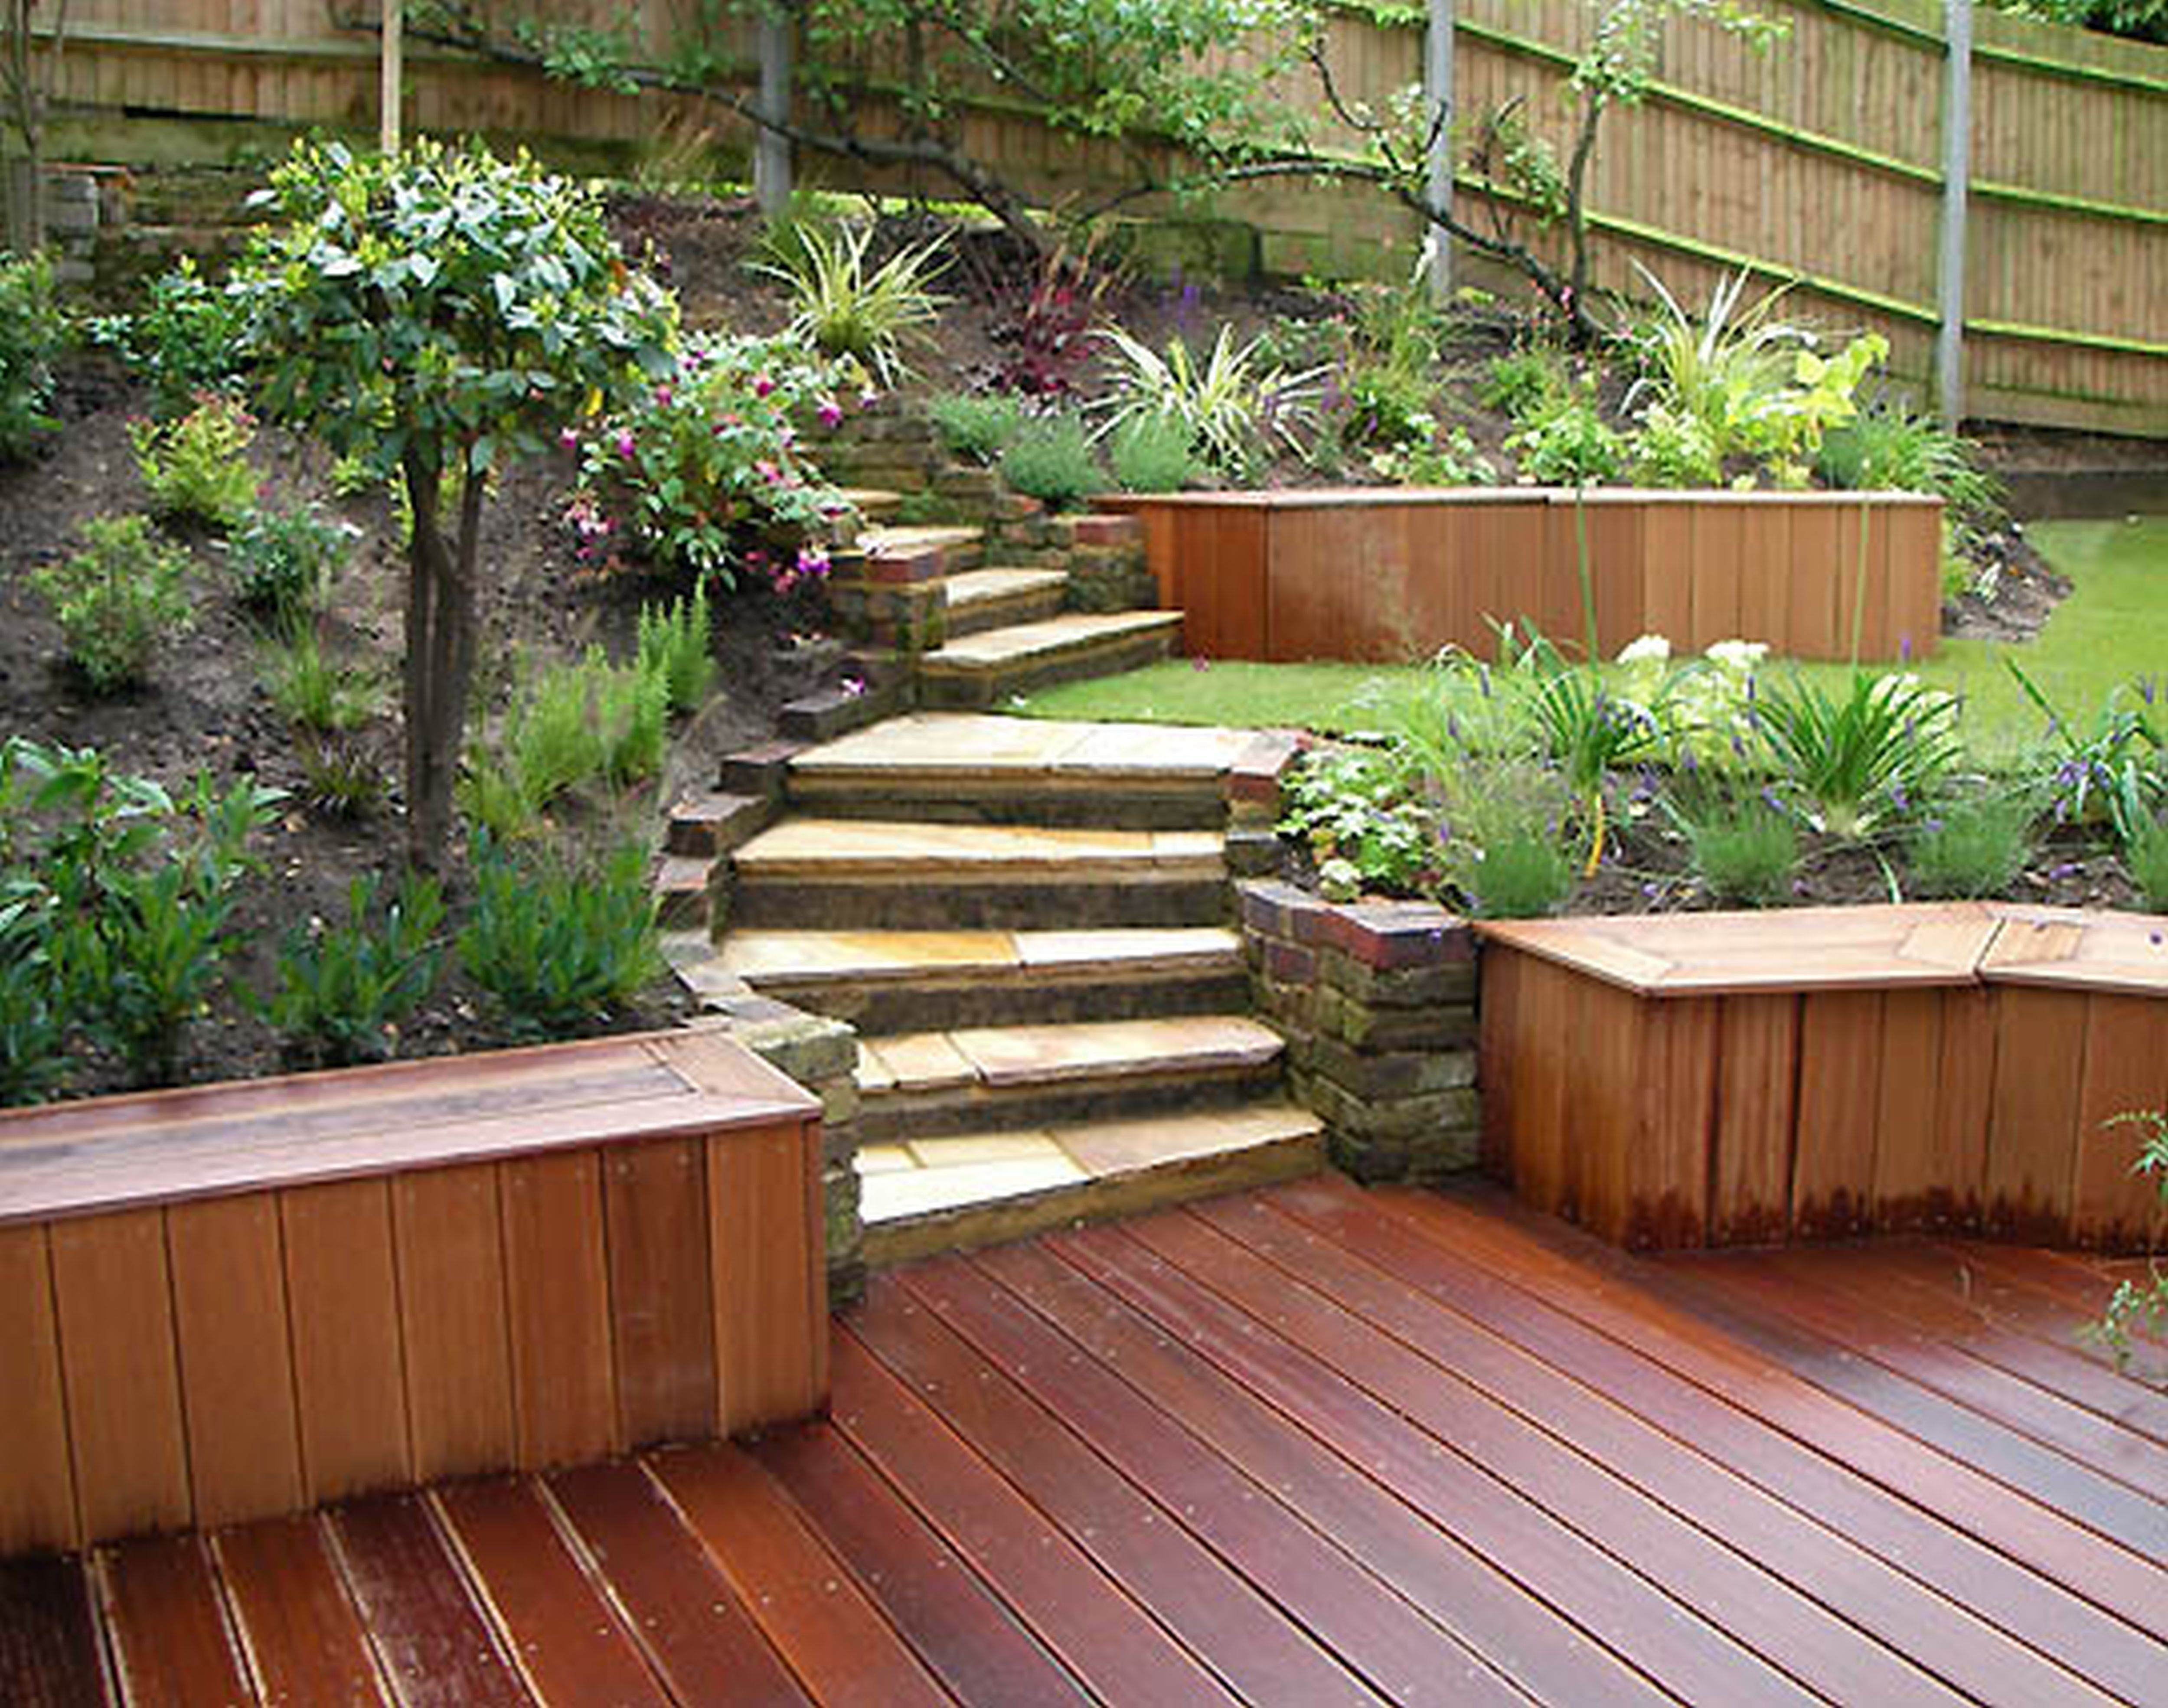 Cool Garden Decorations With Stone Stairs And Wooden Deck And